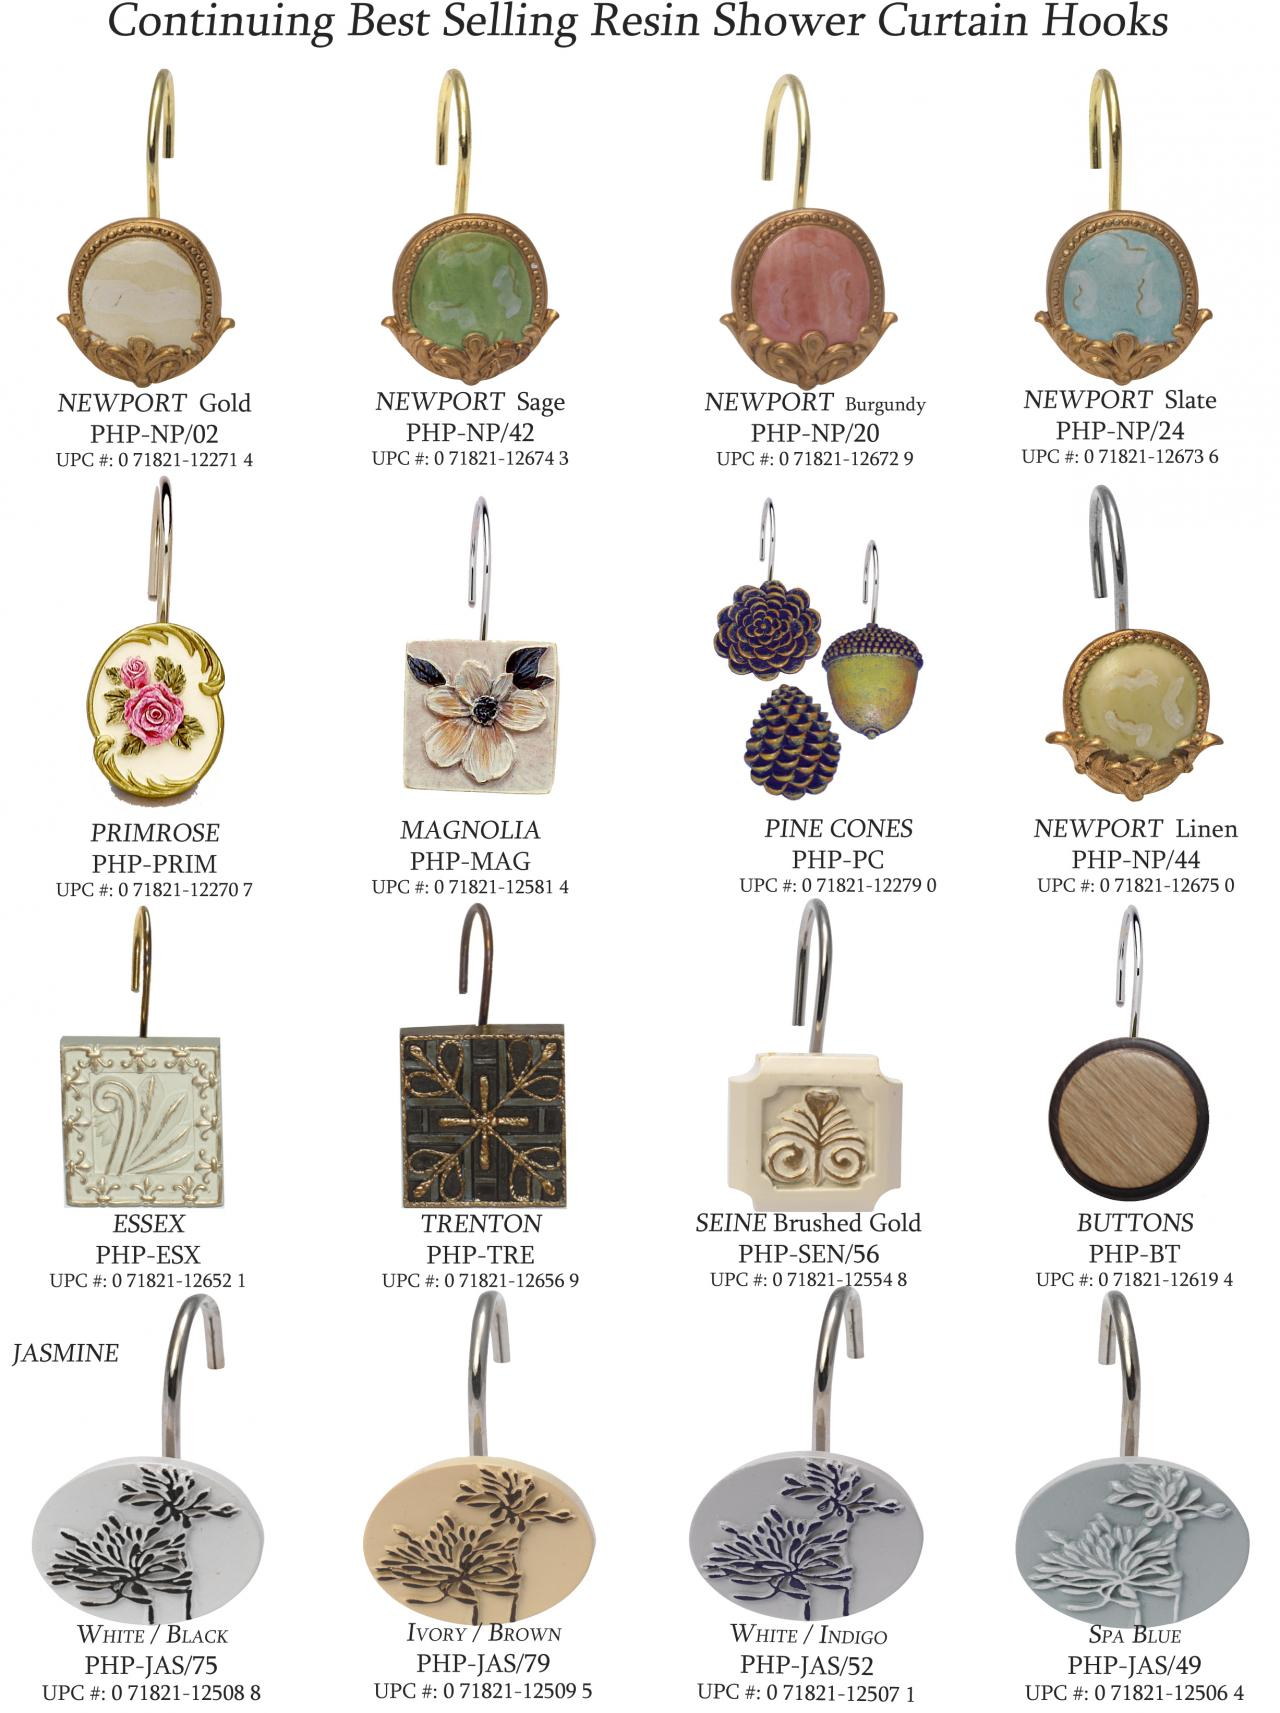 Types Of Shower Curtain Hooks • Shower Curtains Ideas